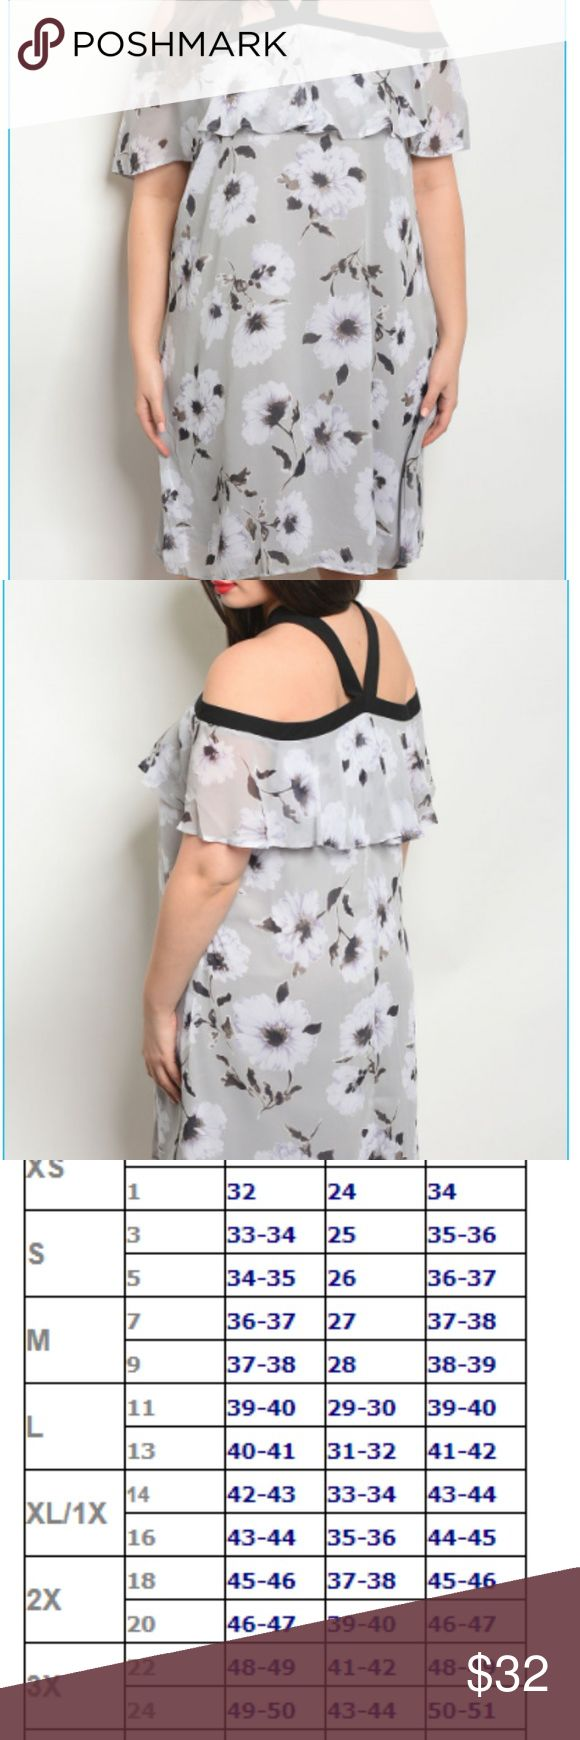 GRAY FLORAL PLUS SIZE DRESS OFFERS ARE WELCOME! Plus size sleeveless halter neck... 3